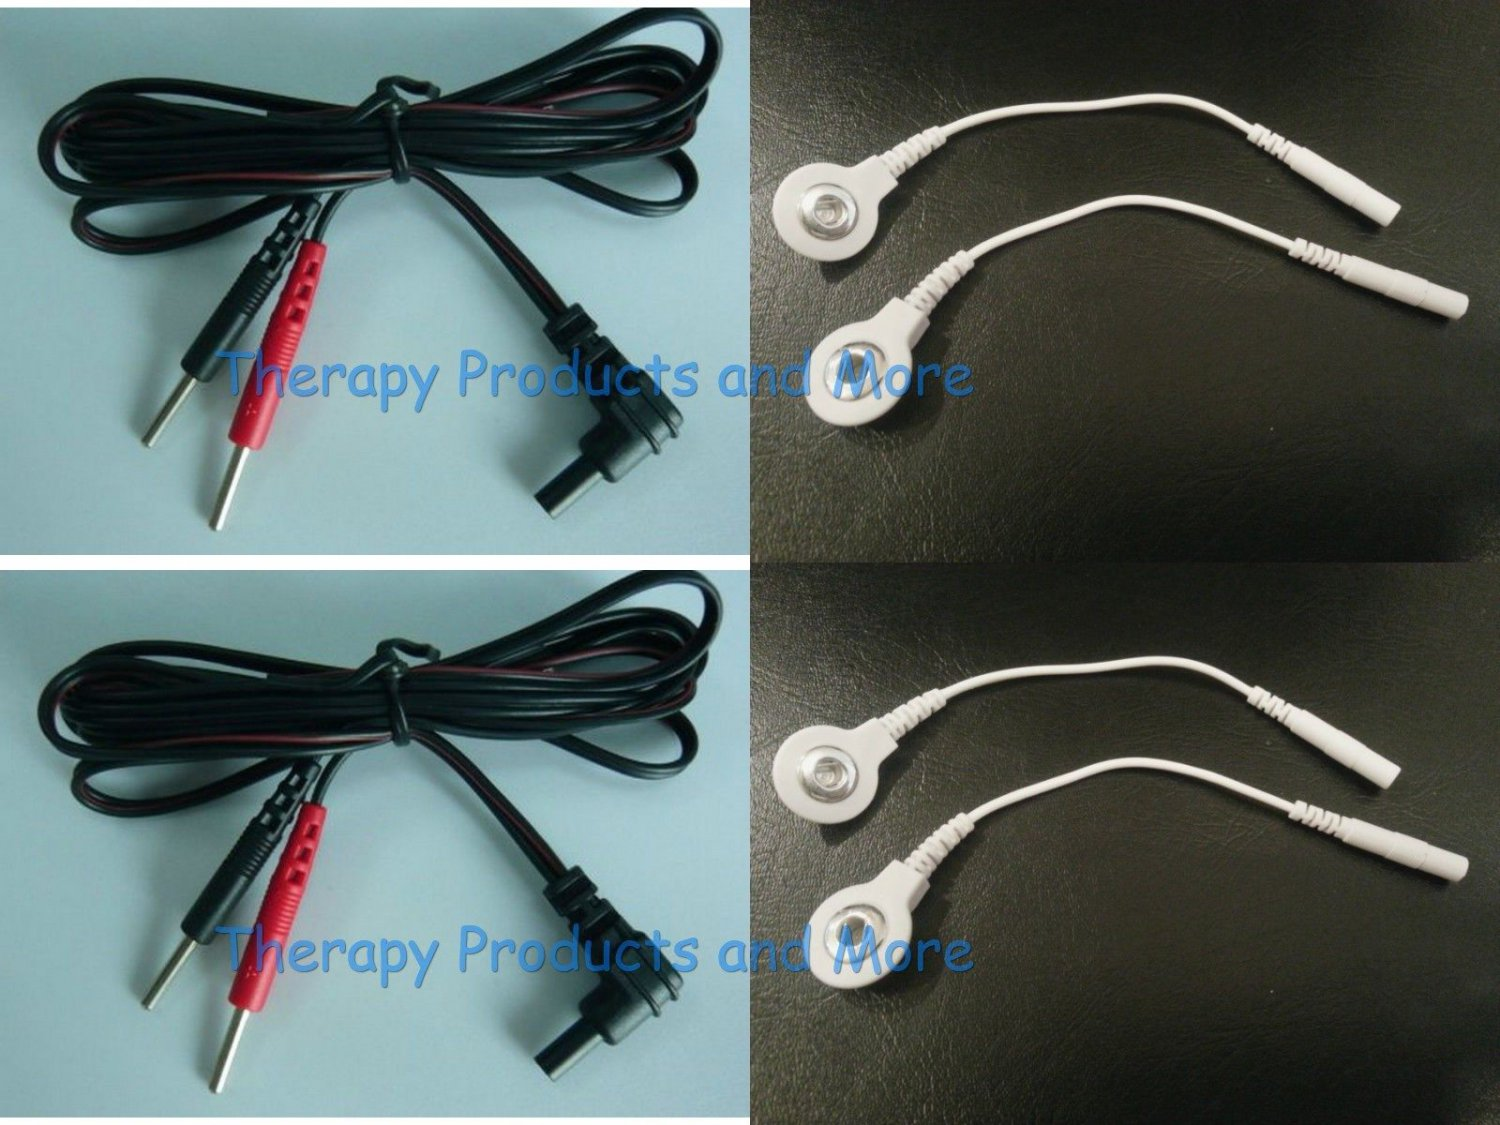 2 Electrode Cables for EMSI-2000 2001 2500 5000 Massagers-Use Snap OR Pin Pads!